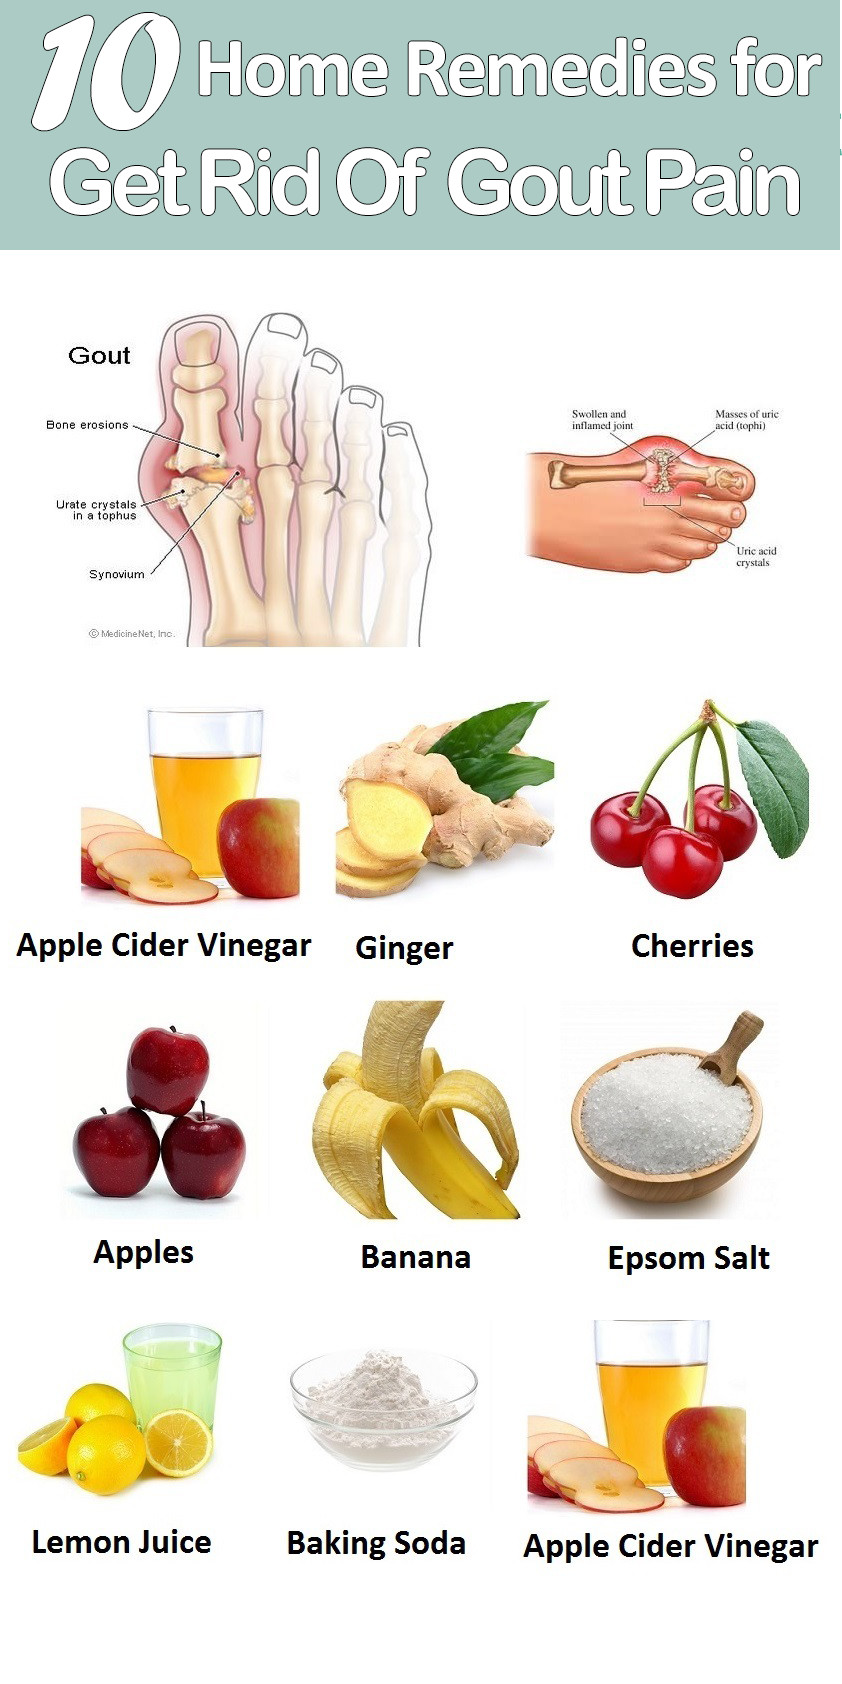 DIY Home Remedies  10 DIY Home Reme s for Gout Pain